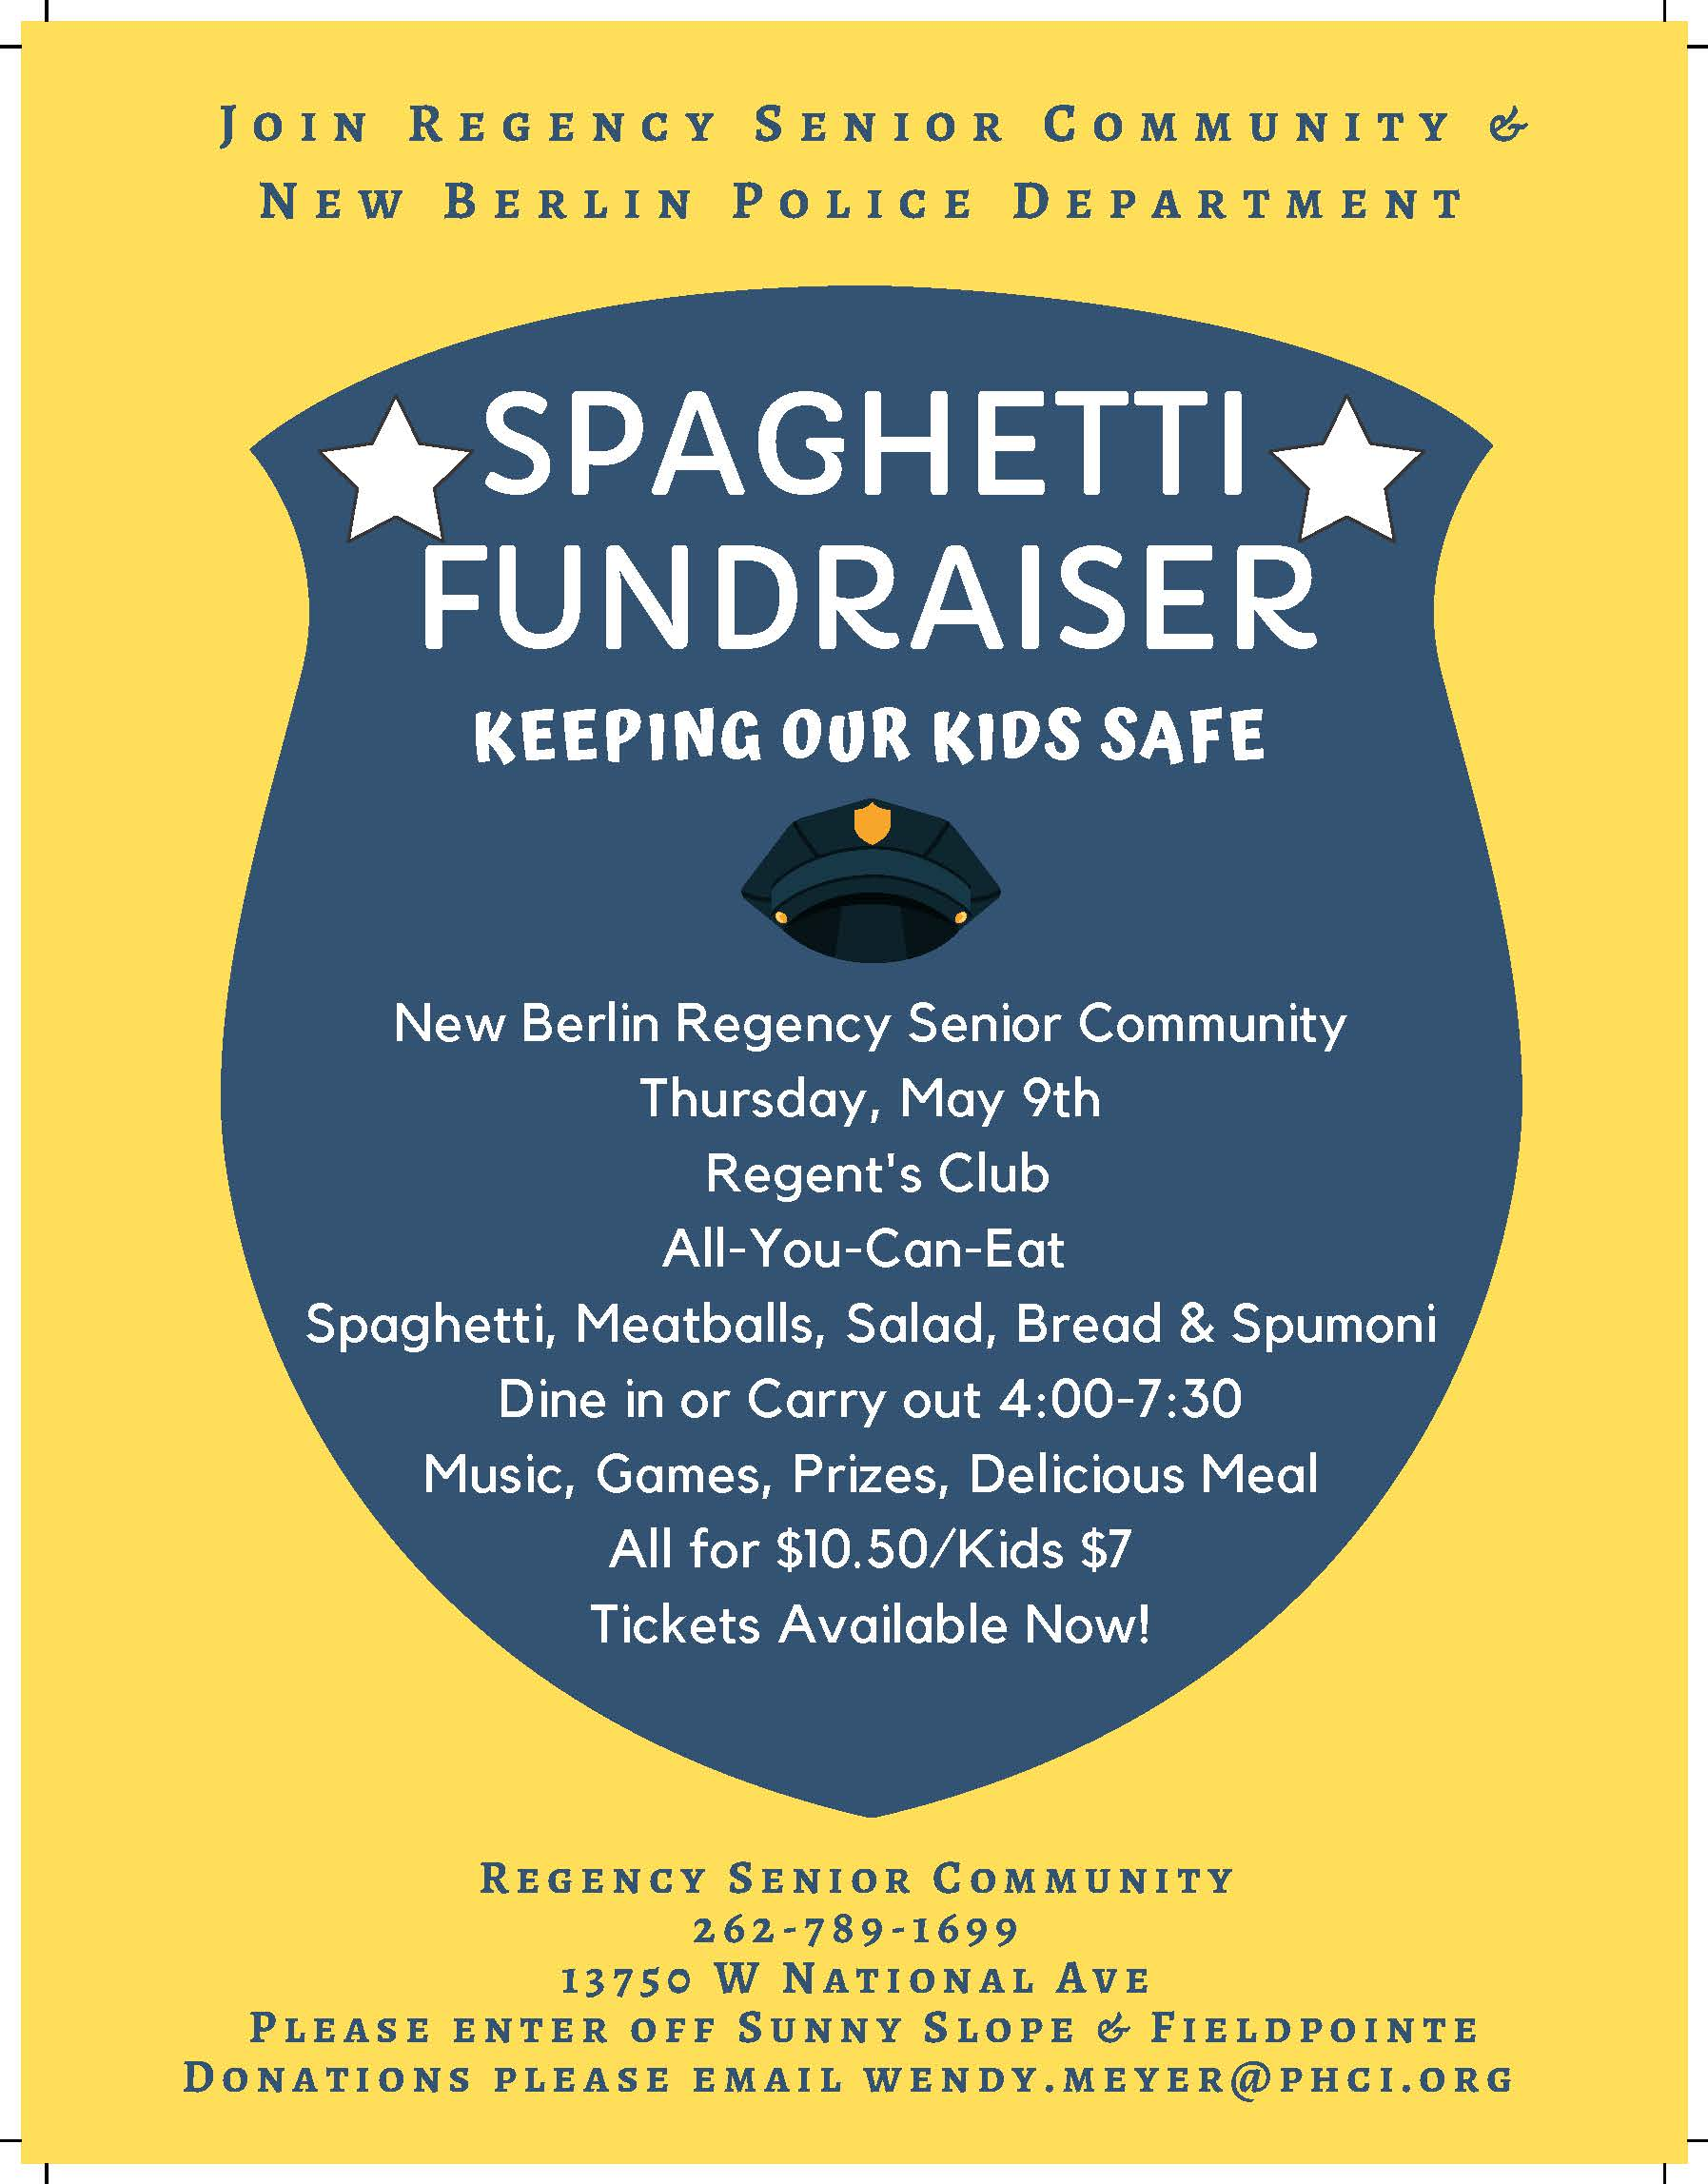 Regency Fundraiser Flyer for New Berlin Police Dept